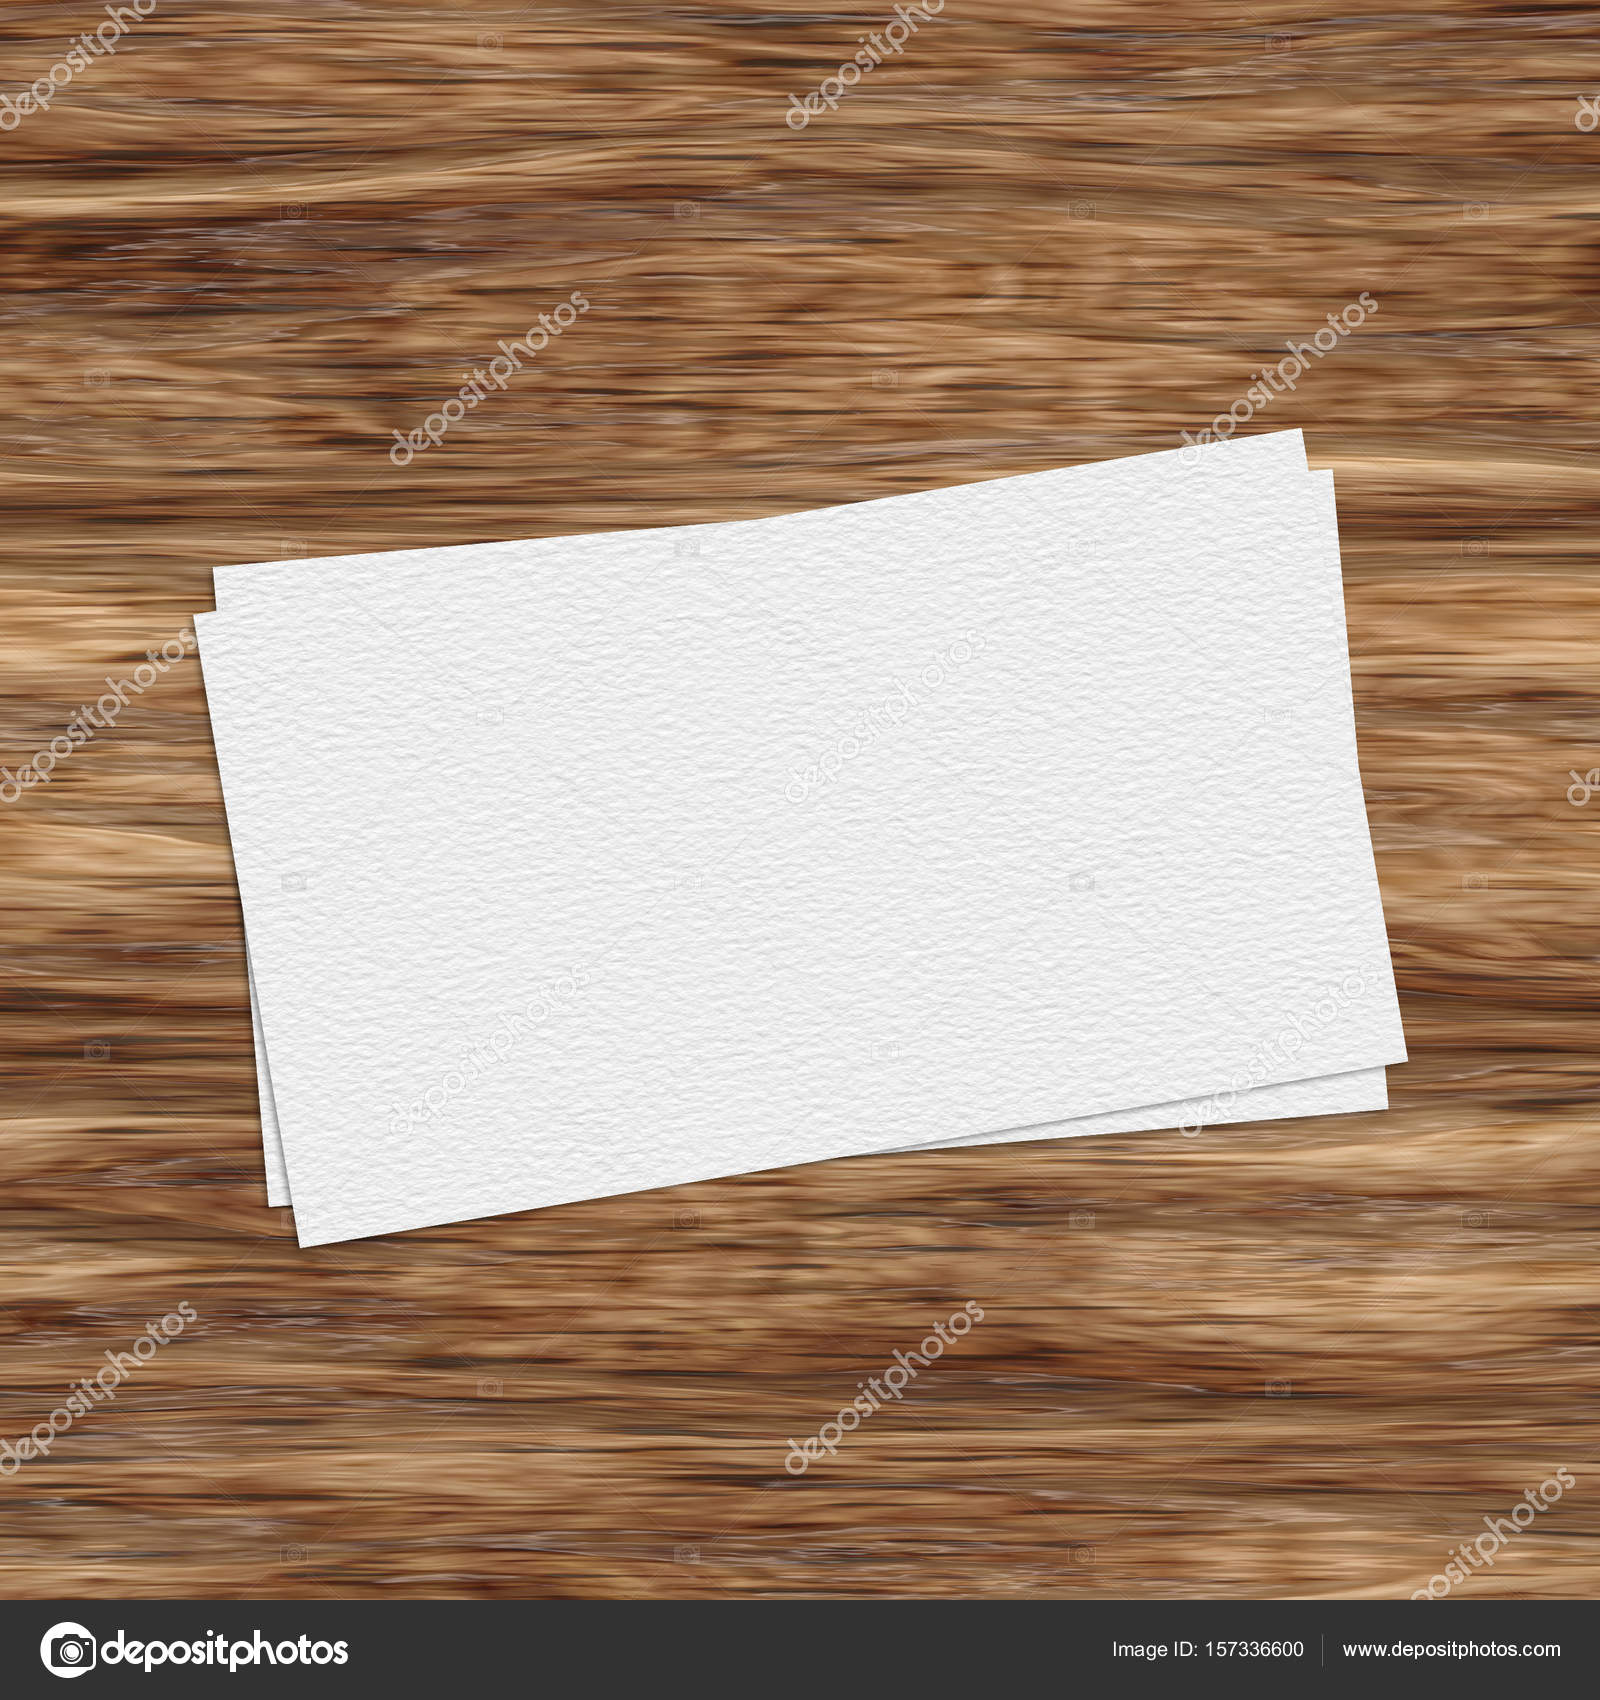 Business card template on wooden table stock photo illustrart business card template on wooden table photo by illustrart reheart Choice Image